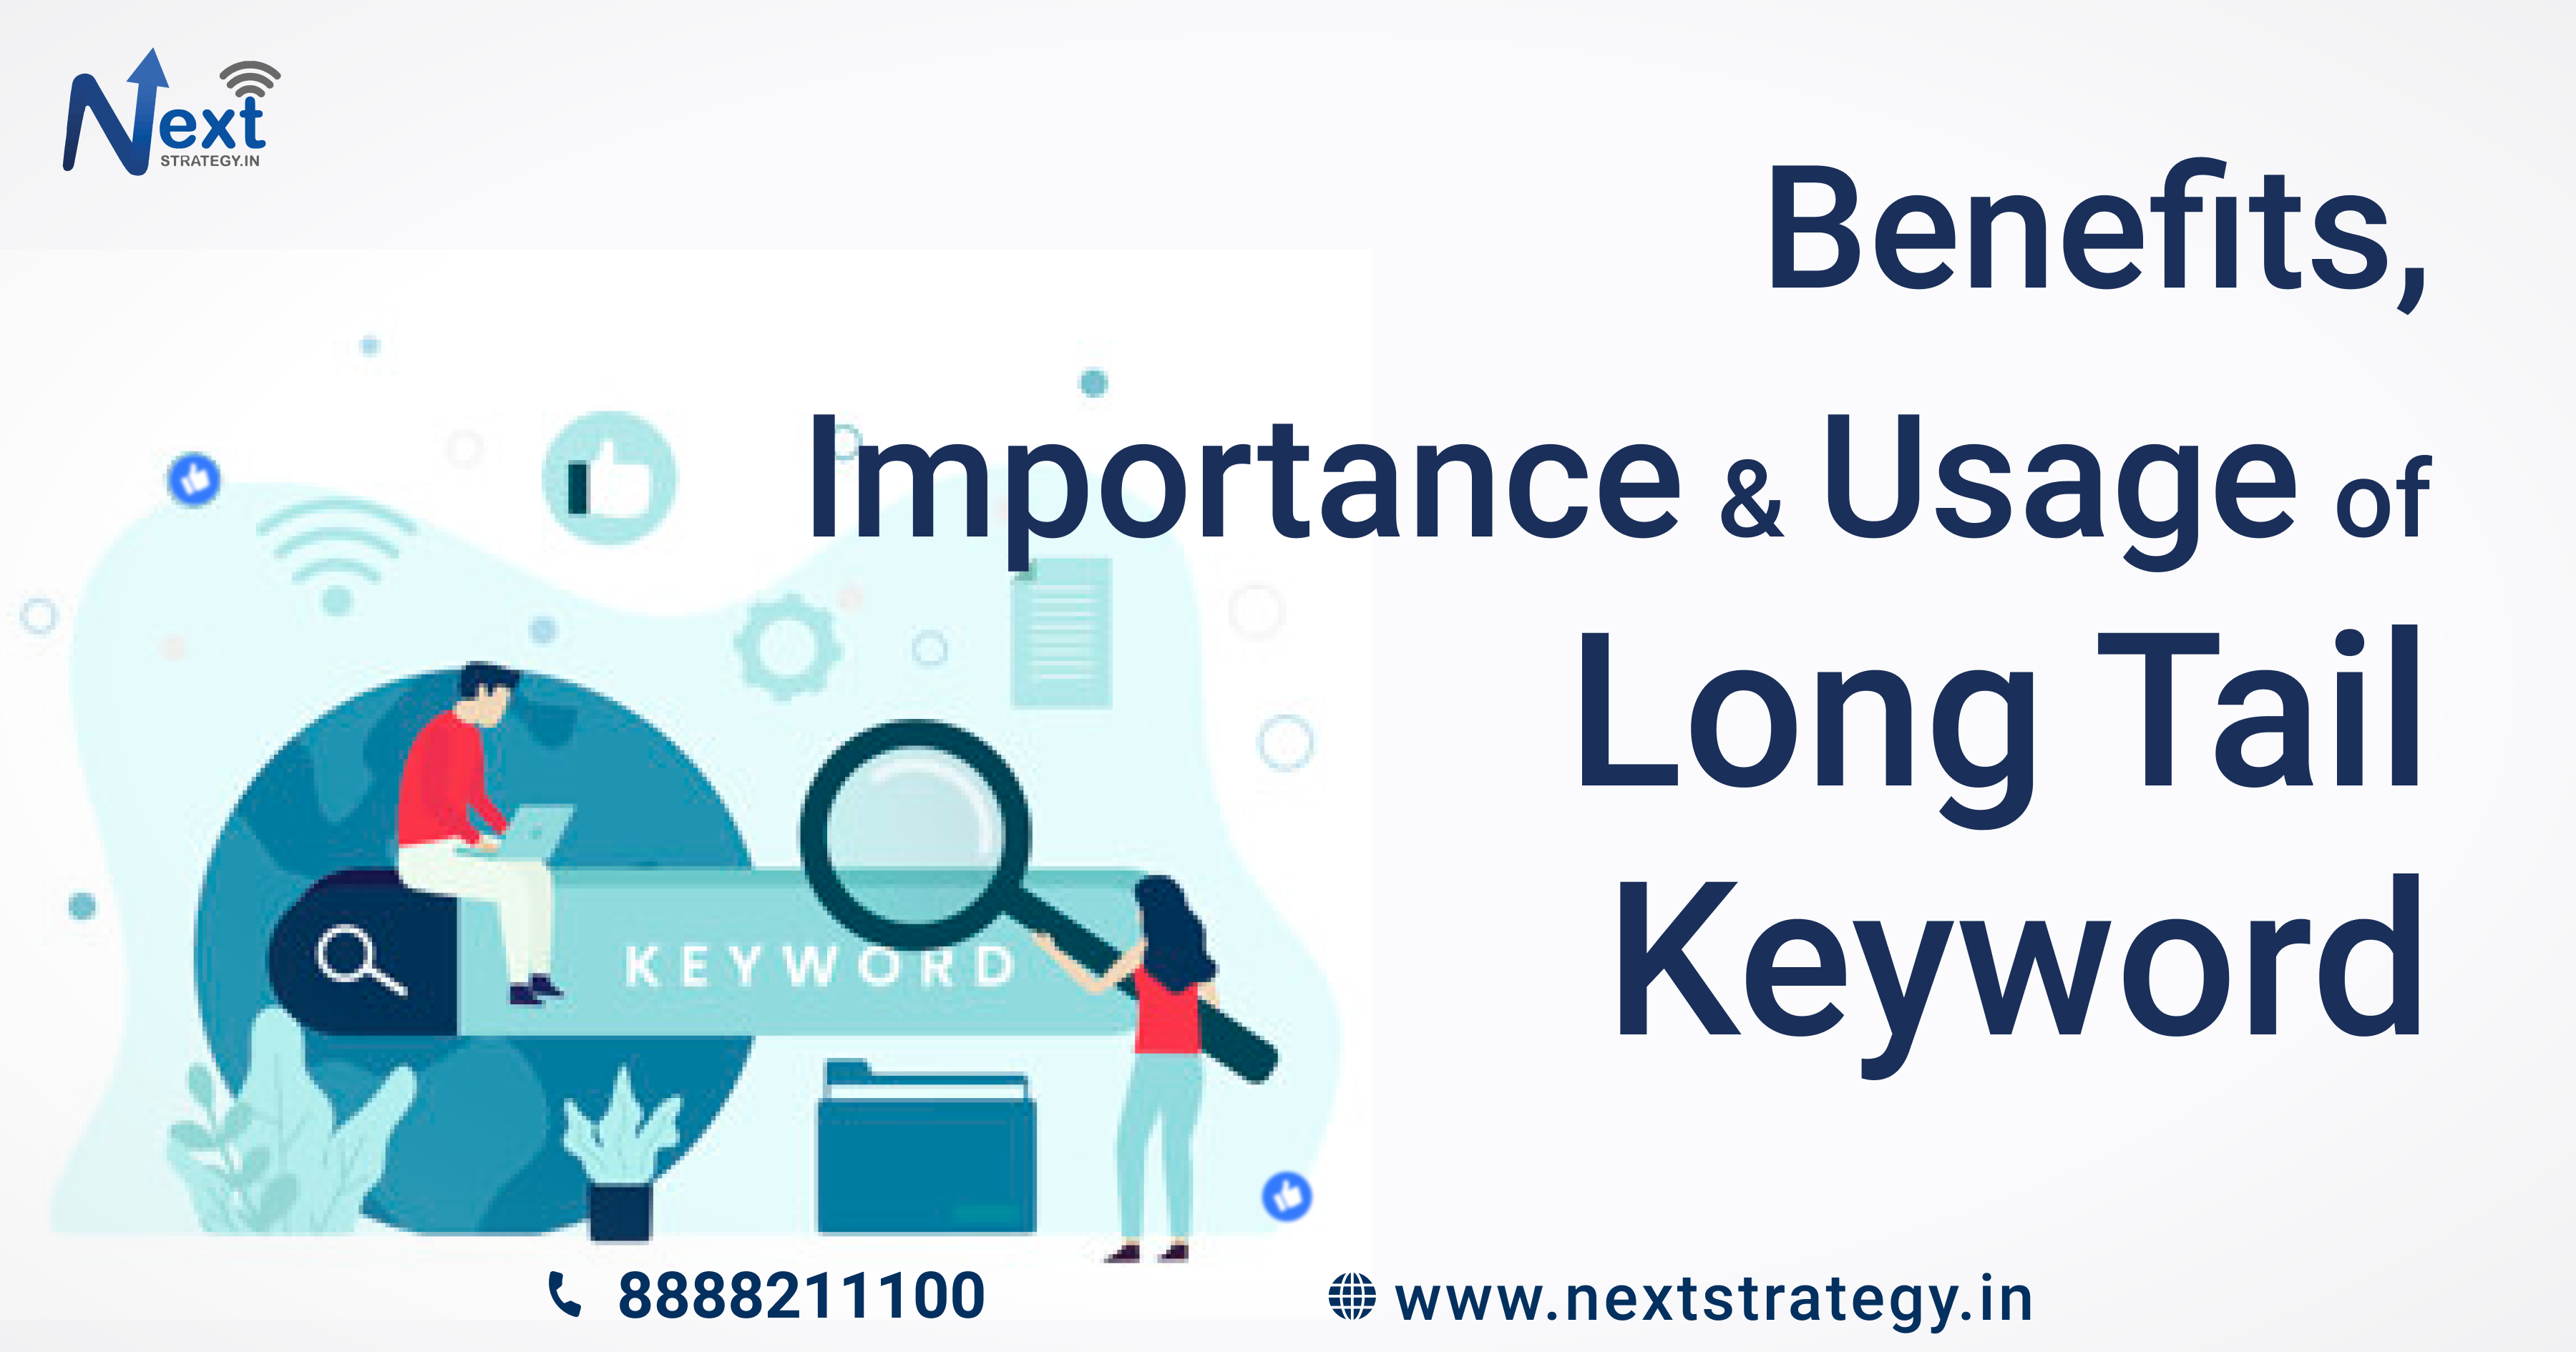 Benefits, Importance, and Usage of Long Term Keyword- Nextstrategy.in - Best Social Media Marketing Company in Maharashtra